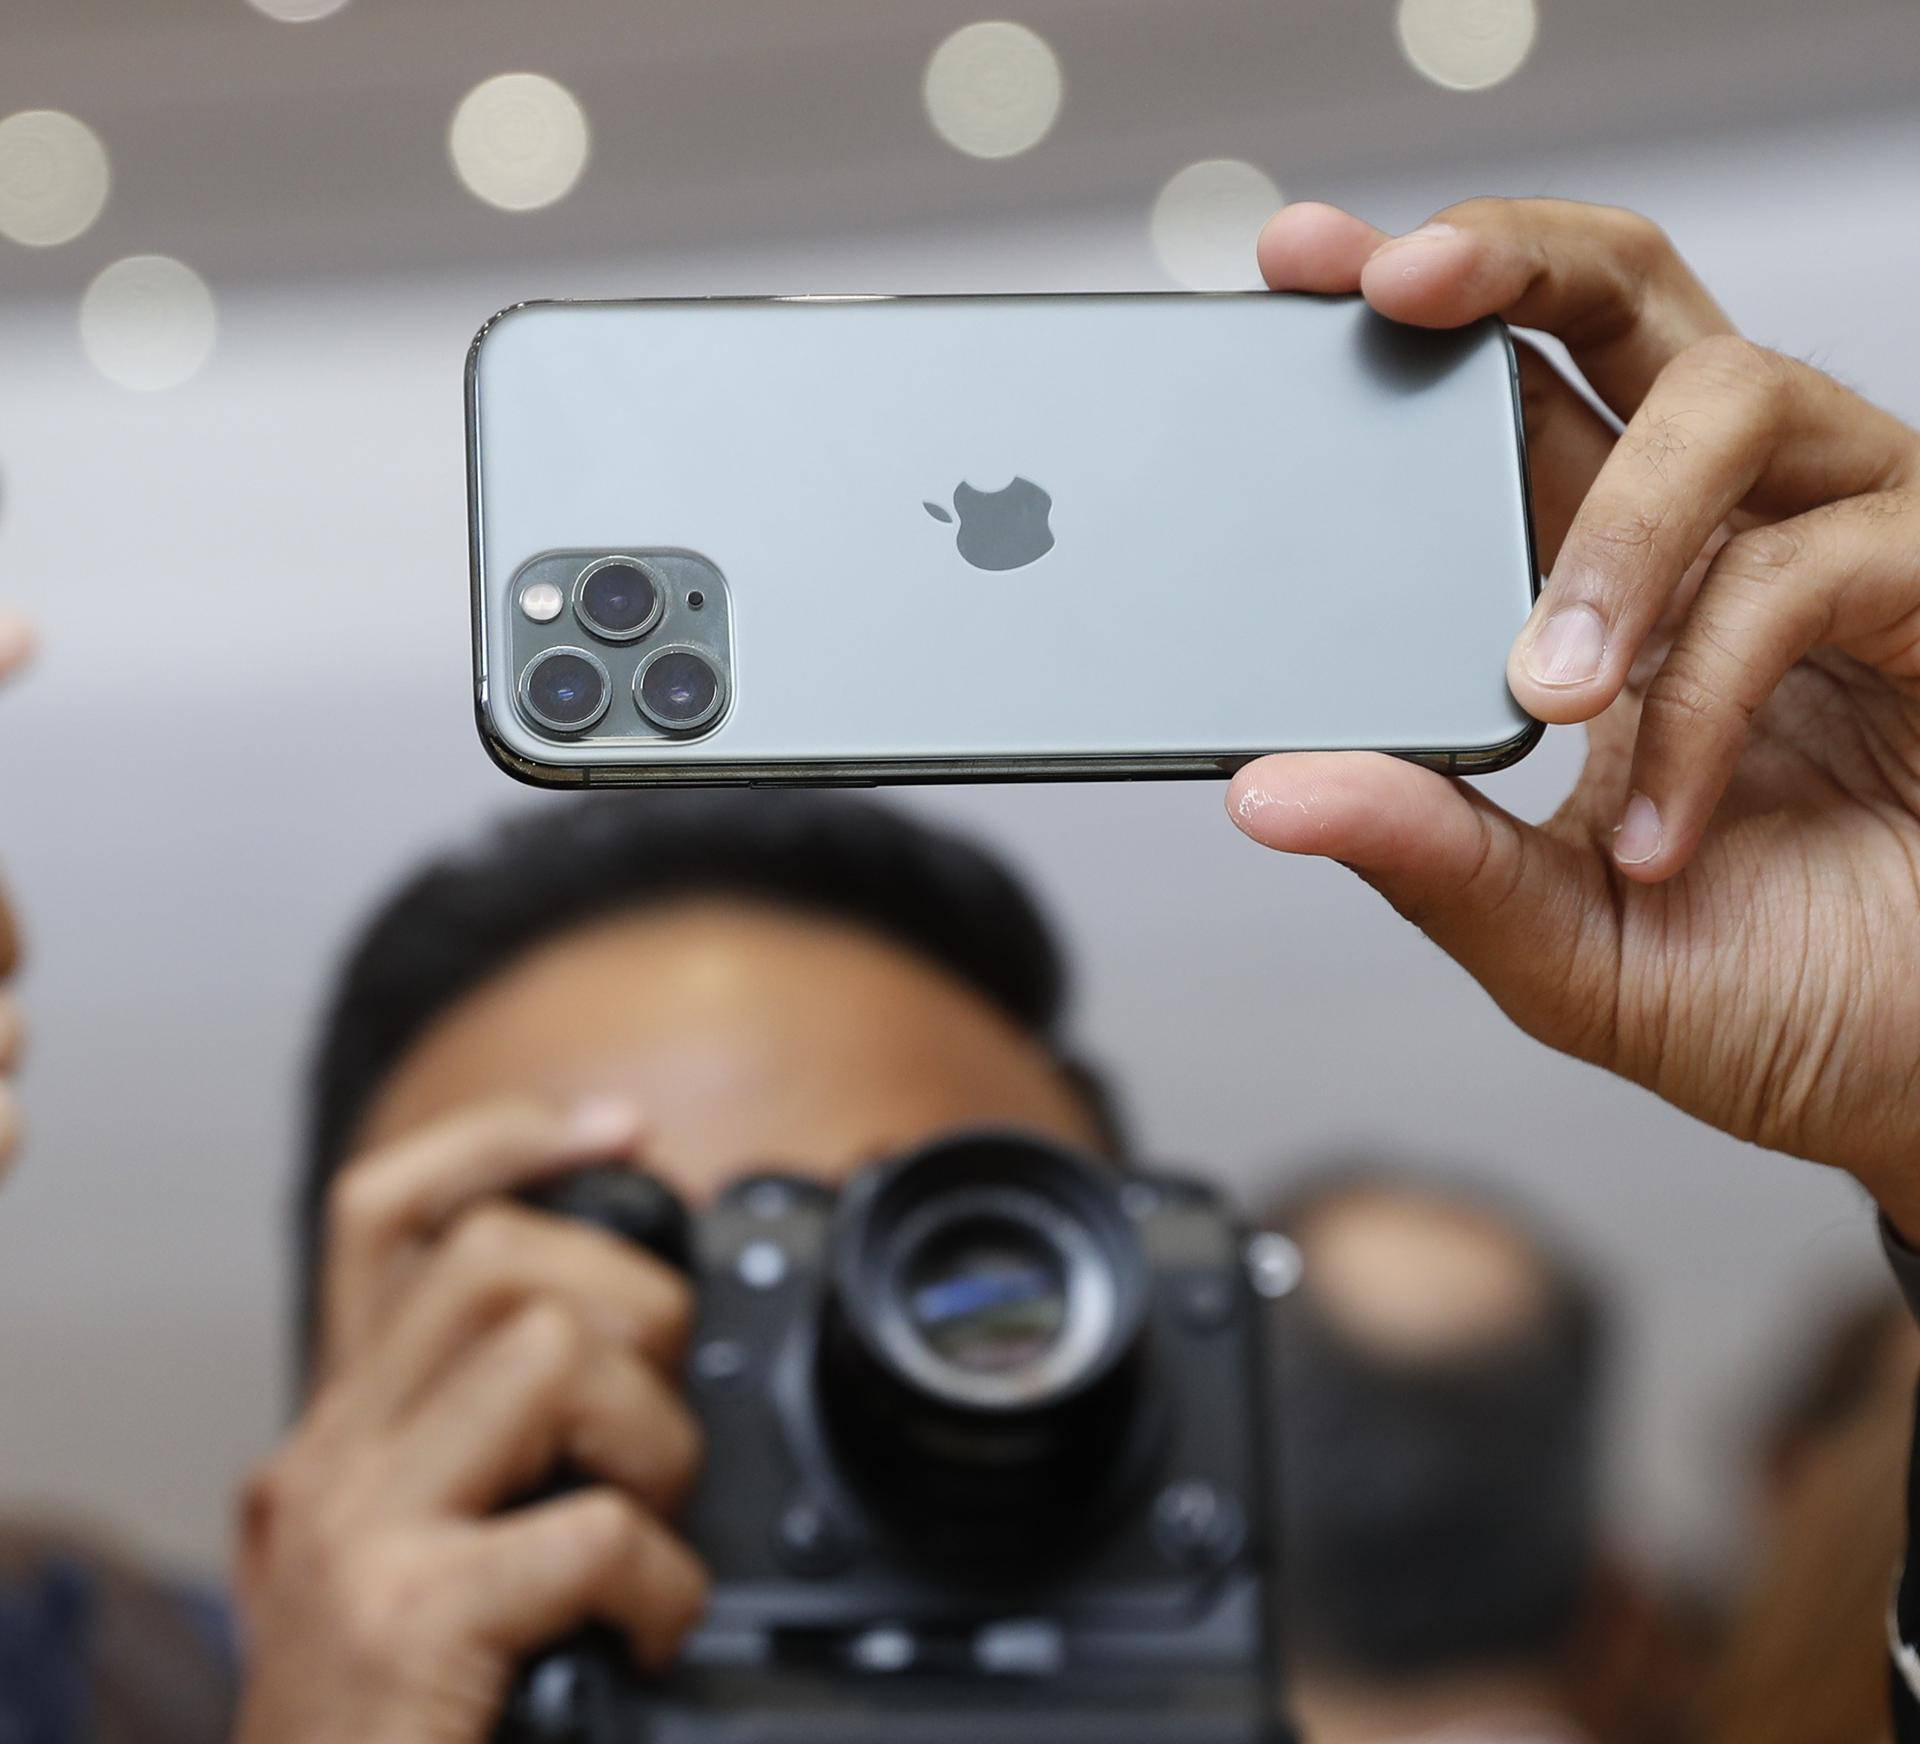 People take photos of the new iPhone  11 Pro in the demonstration room at an Apple event at their headquarters in Cupertino